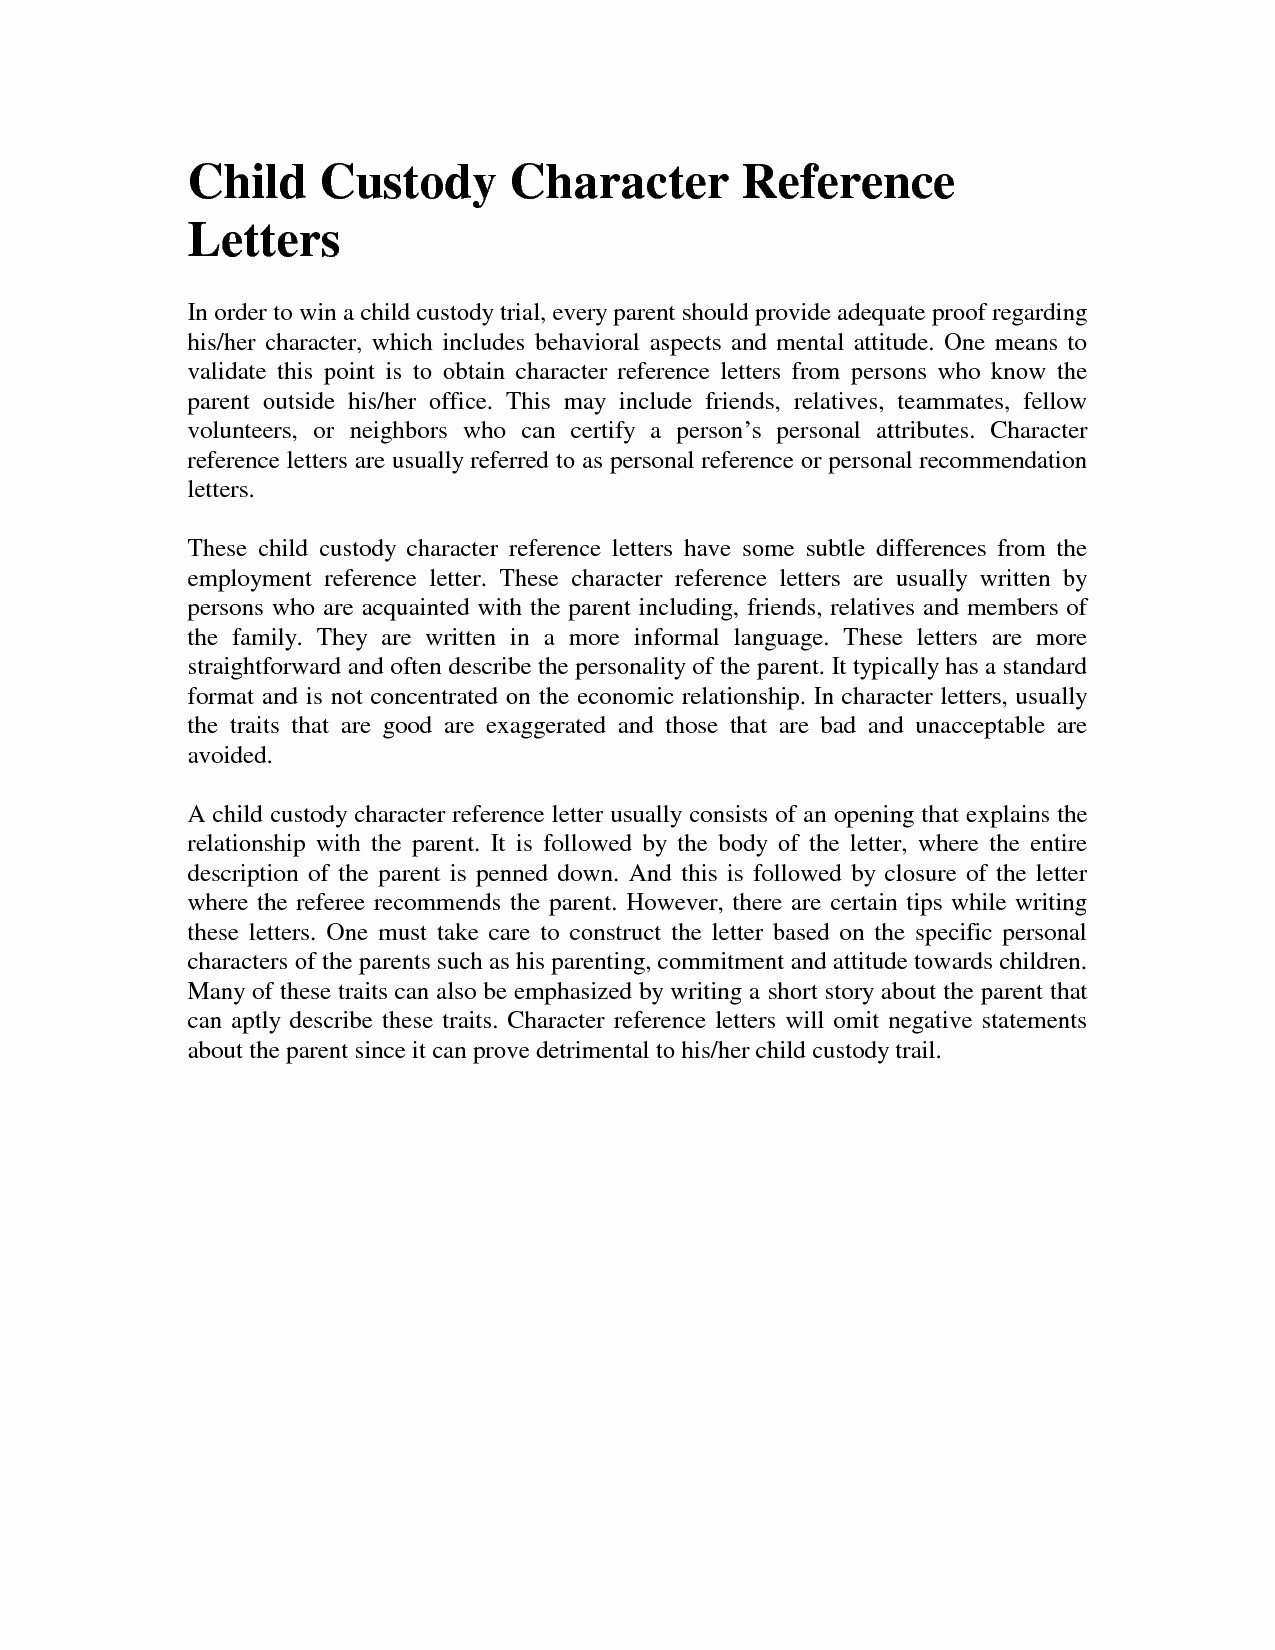 Child Custody Letter Template Fresh Character Reference Letter for Court Child Custody